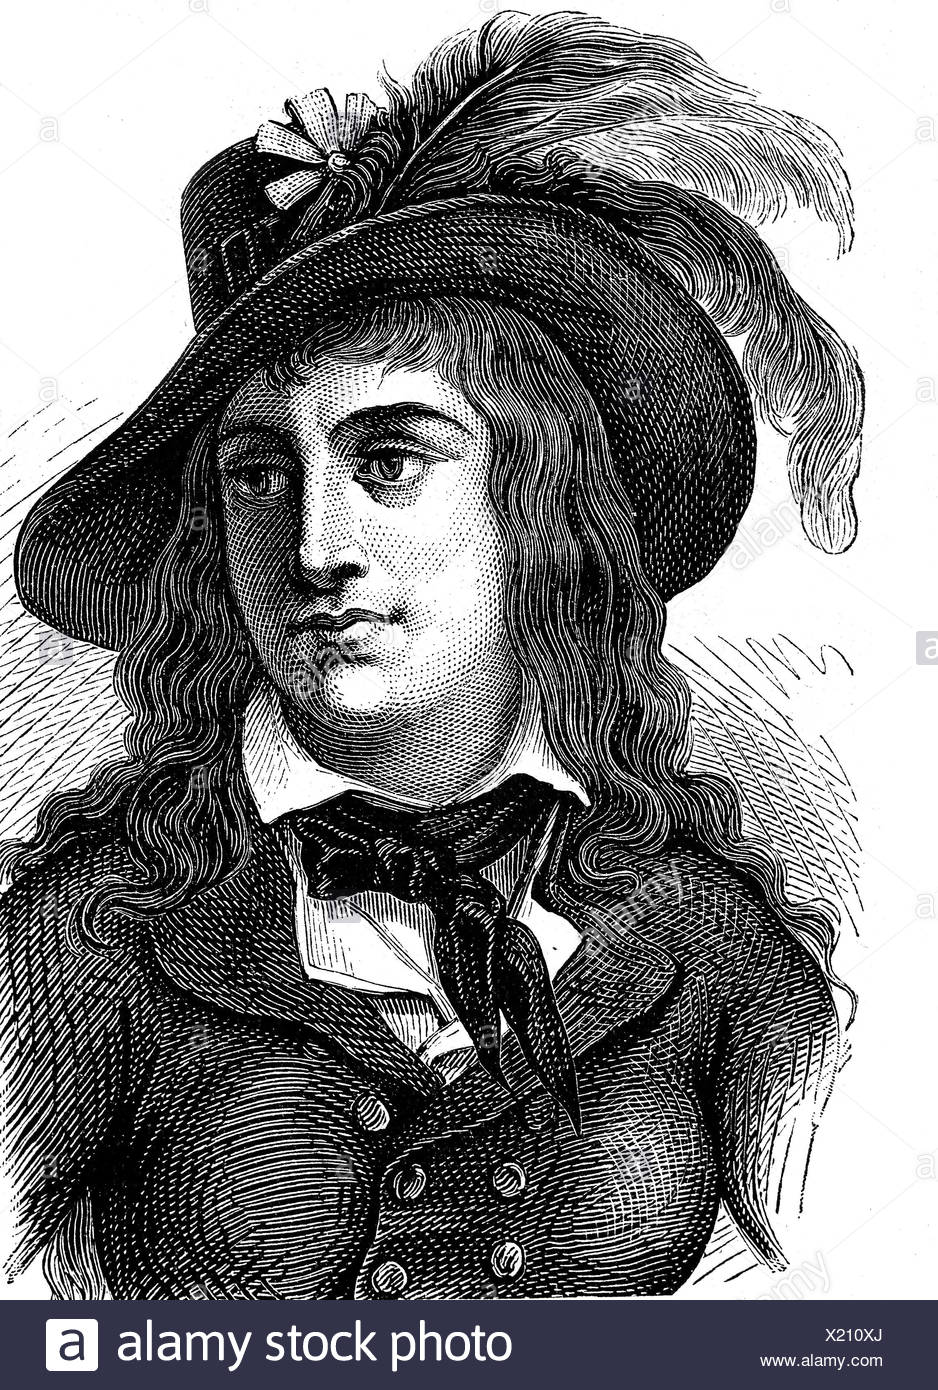 Mericourt, Theroigne de, 13.8.1762 - 9.6.1817, French evolutionary and women's rights' activist, portrait, wood engraving, late 19th century, Additional-Rights-Clearances-NA - Stock Image